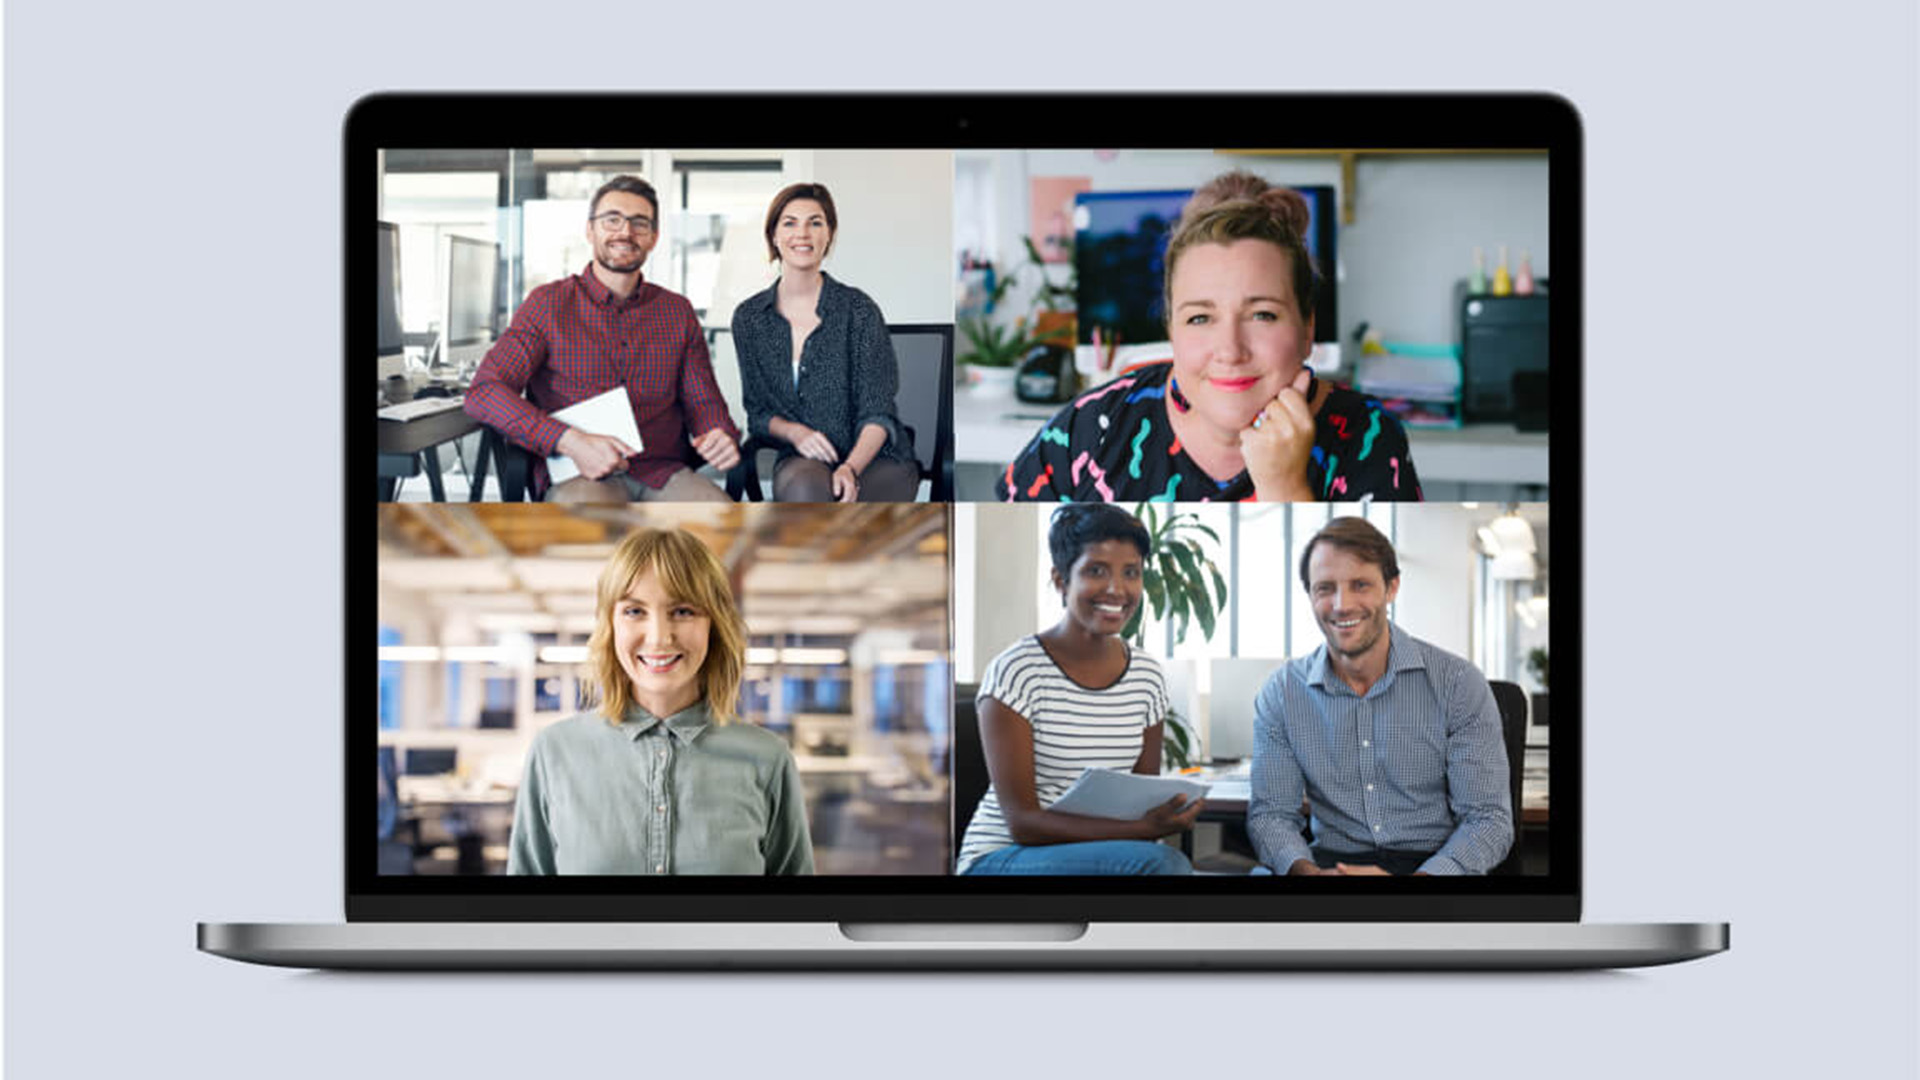 professionals-on-video-conferencing-call-split-screen